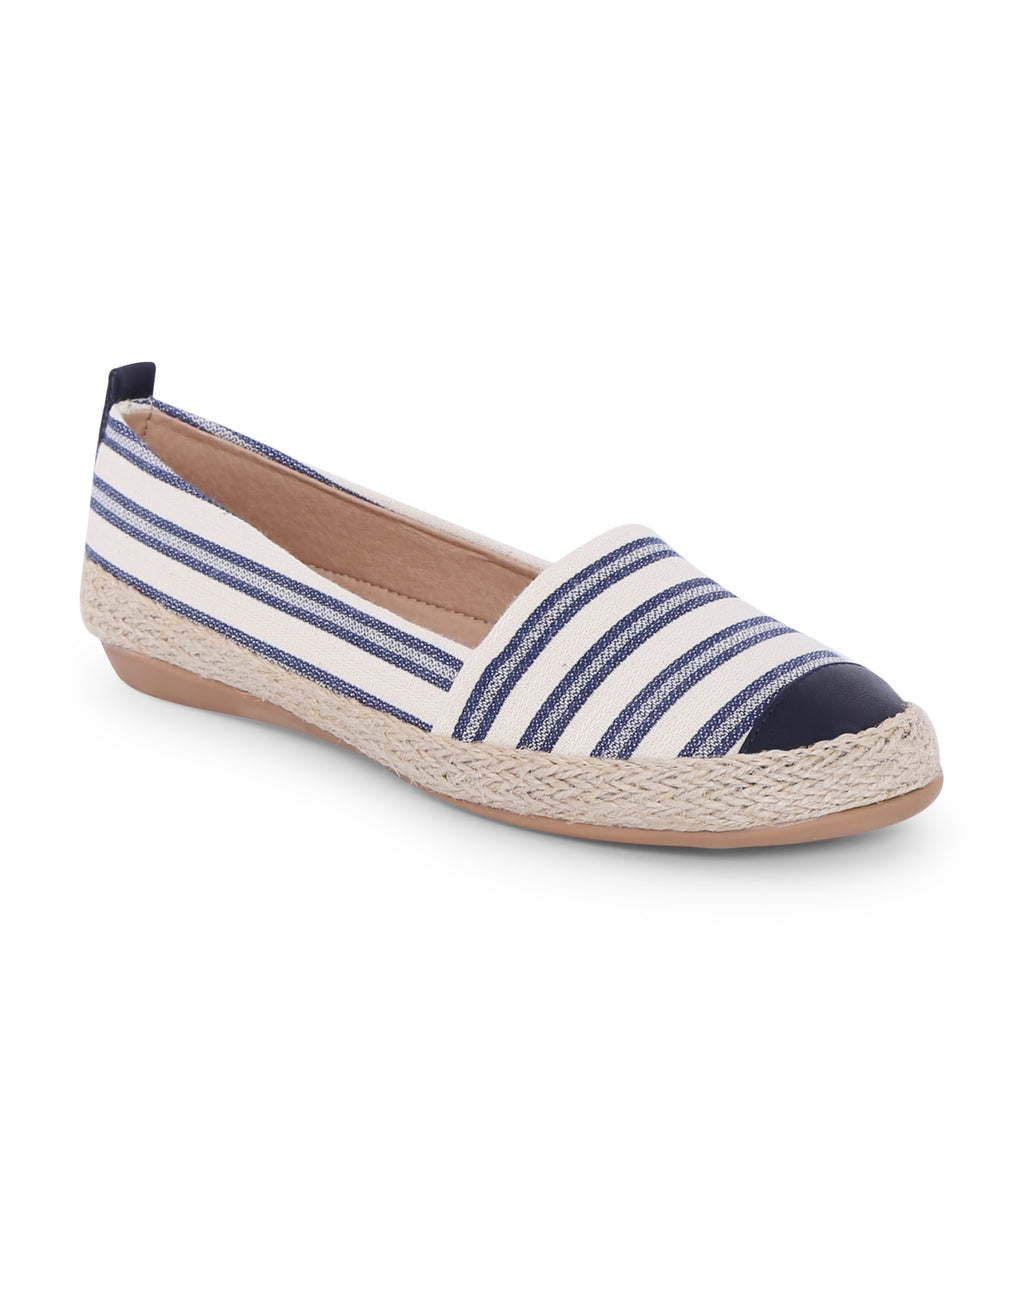 Anfisa Navy Stripped Espadrilles